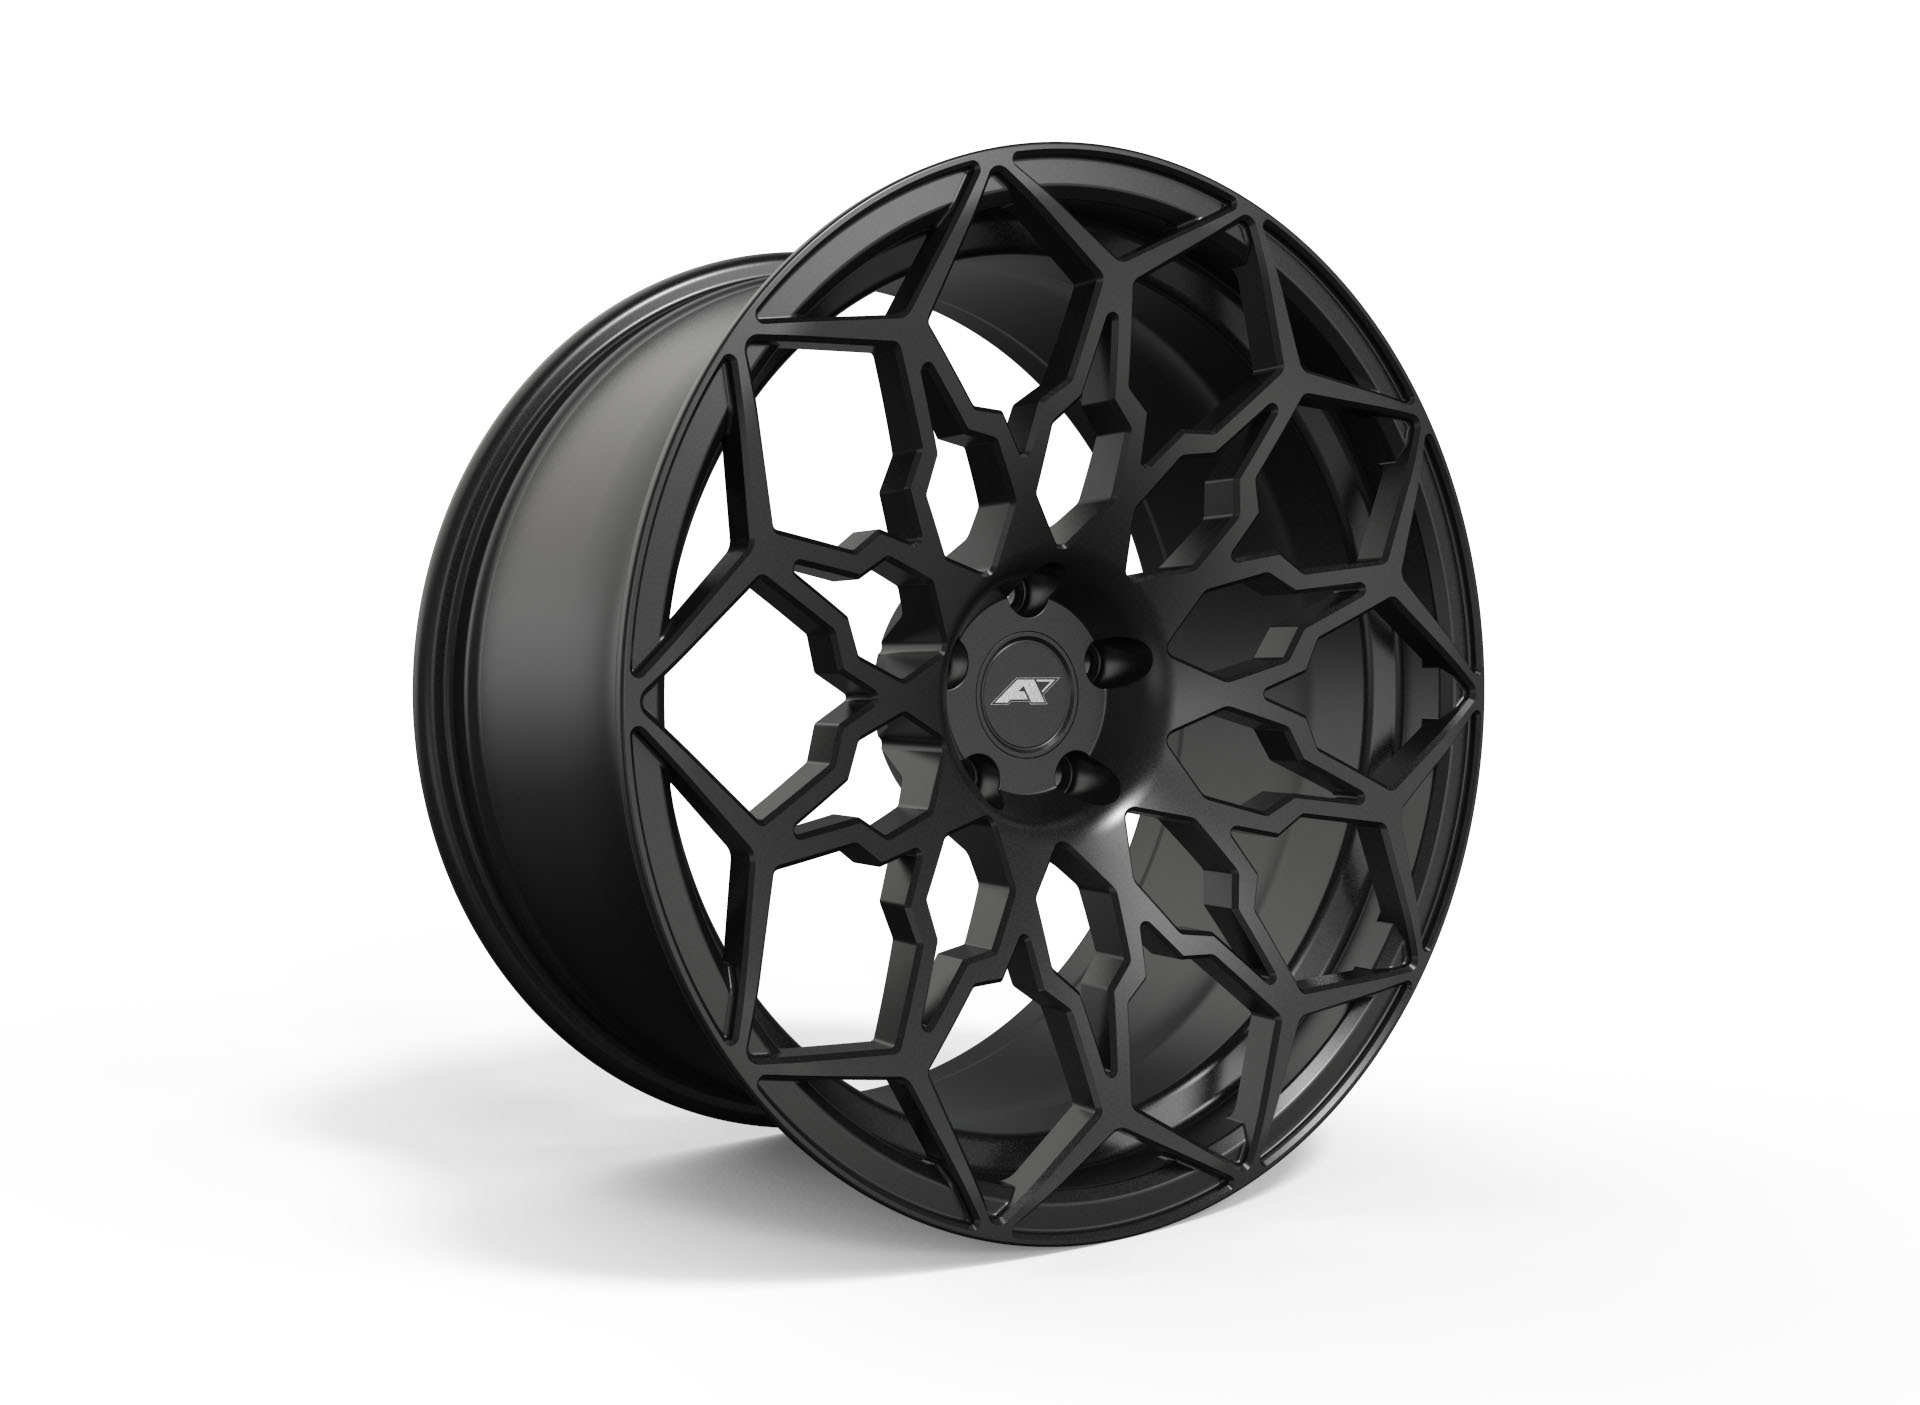 AMP Forged Wheels AMP 1010